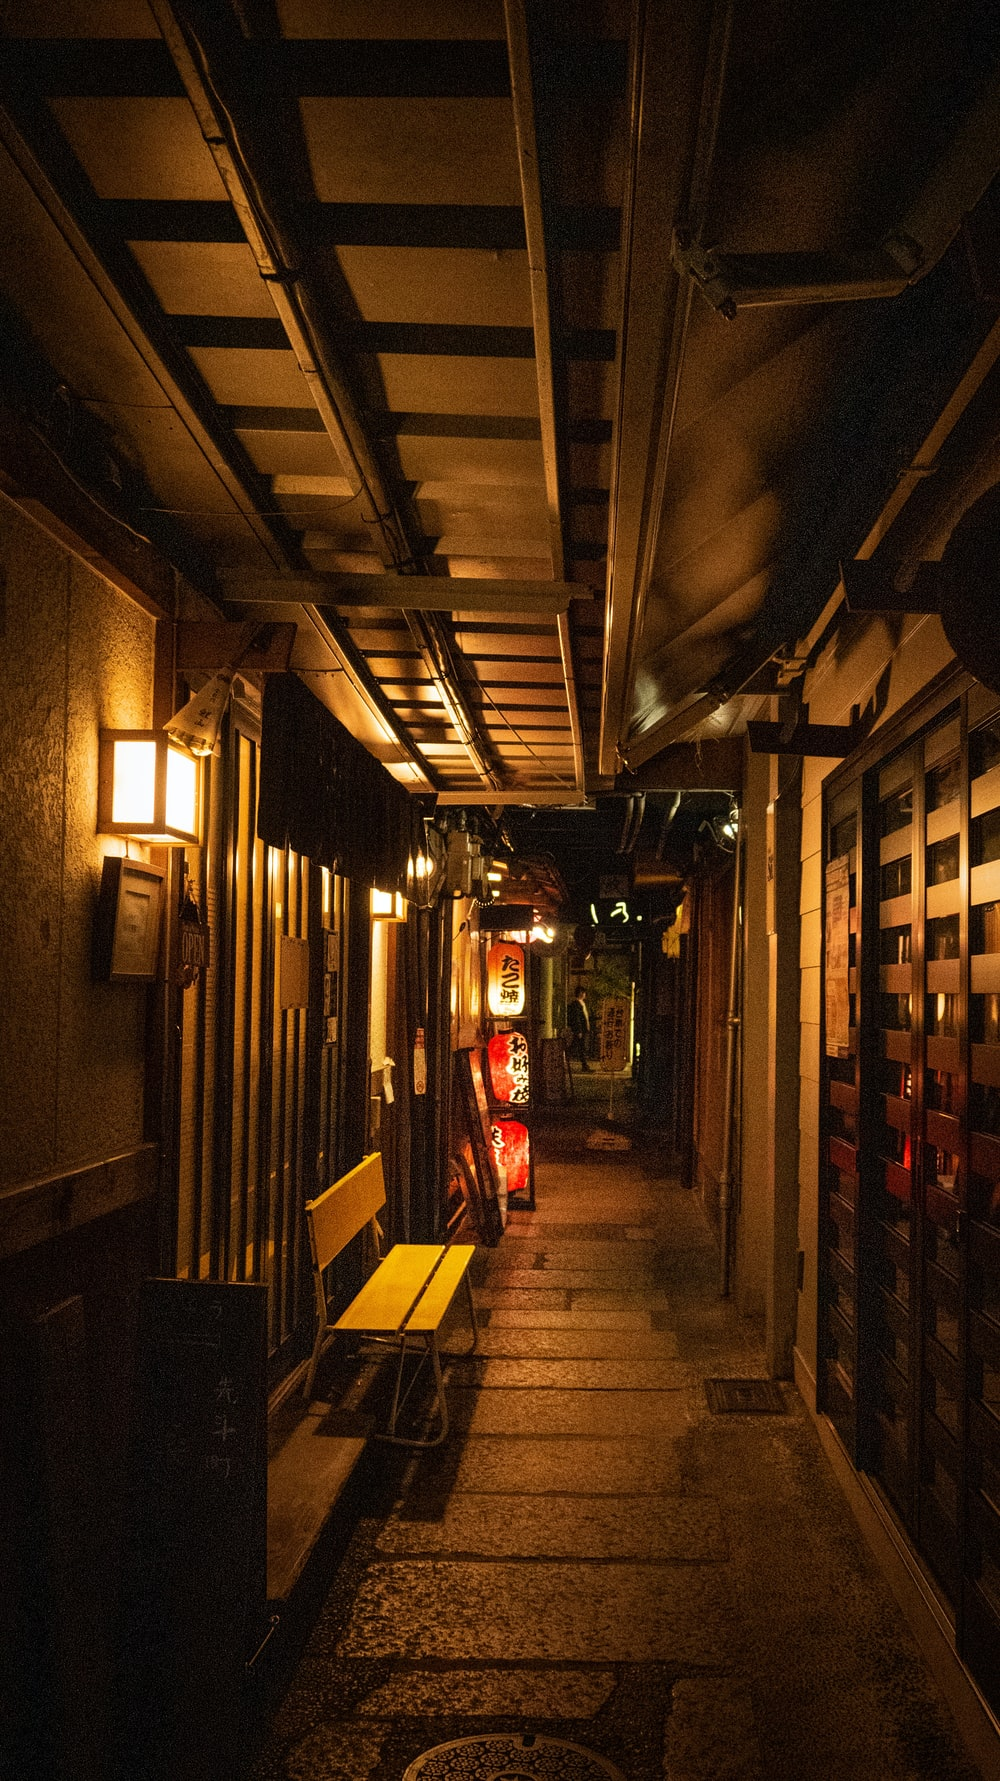 narrow pathway lighted with sconces